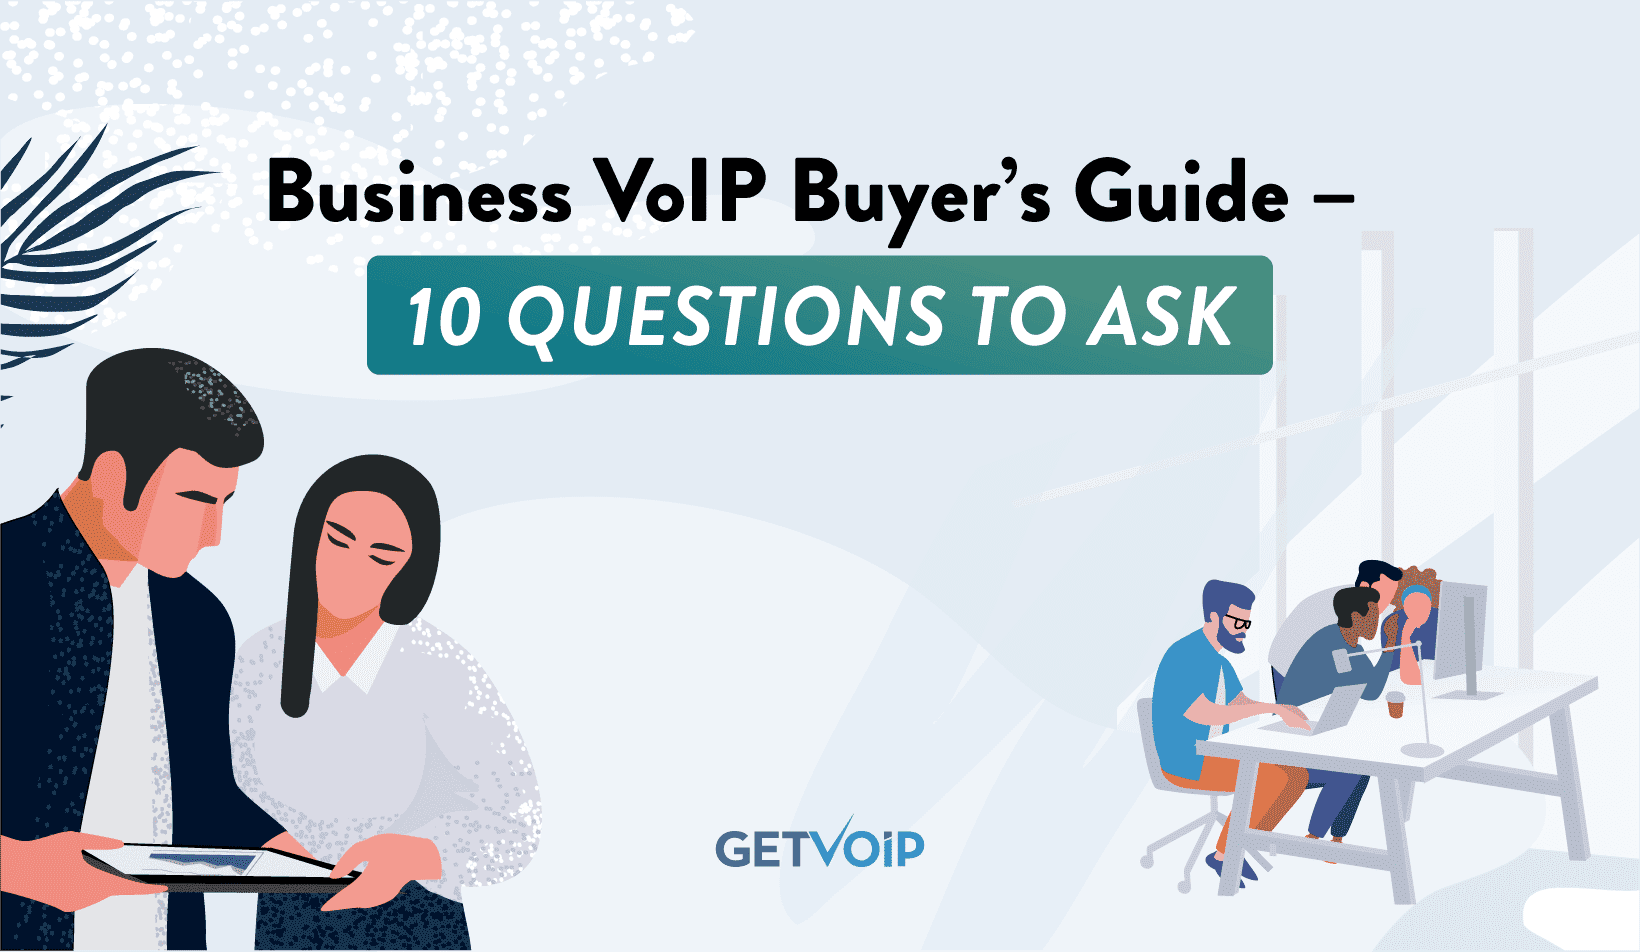 Business VoIP Buyer's Guide – 10 Questions to Ask